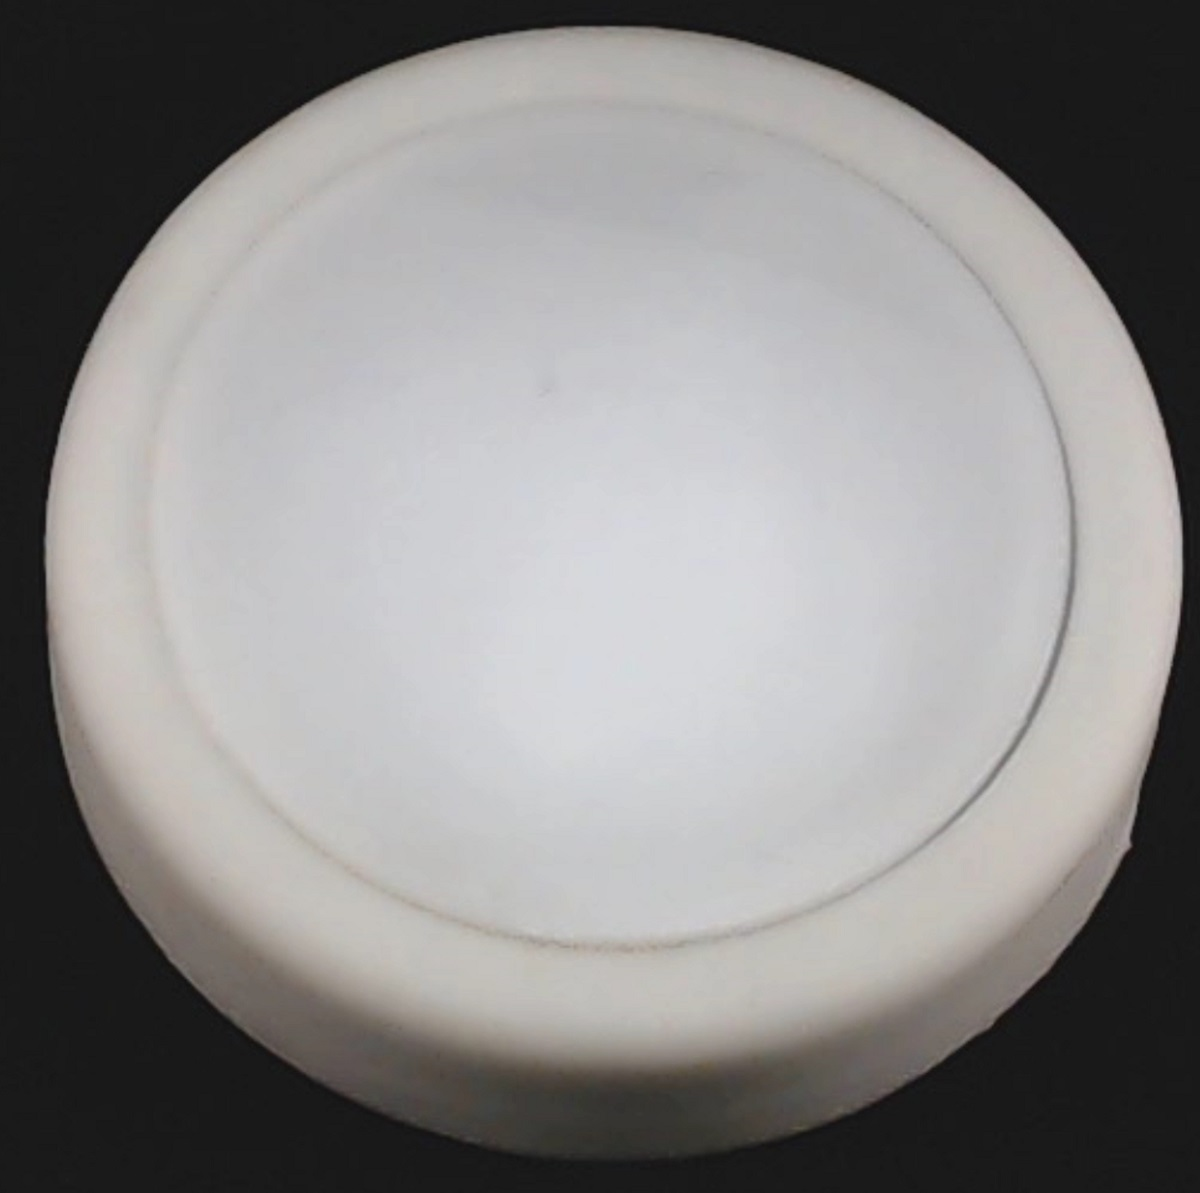 3364291 Washer Timer Knob White For Whirlpool